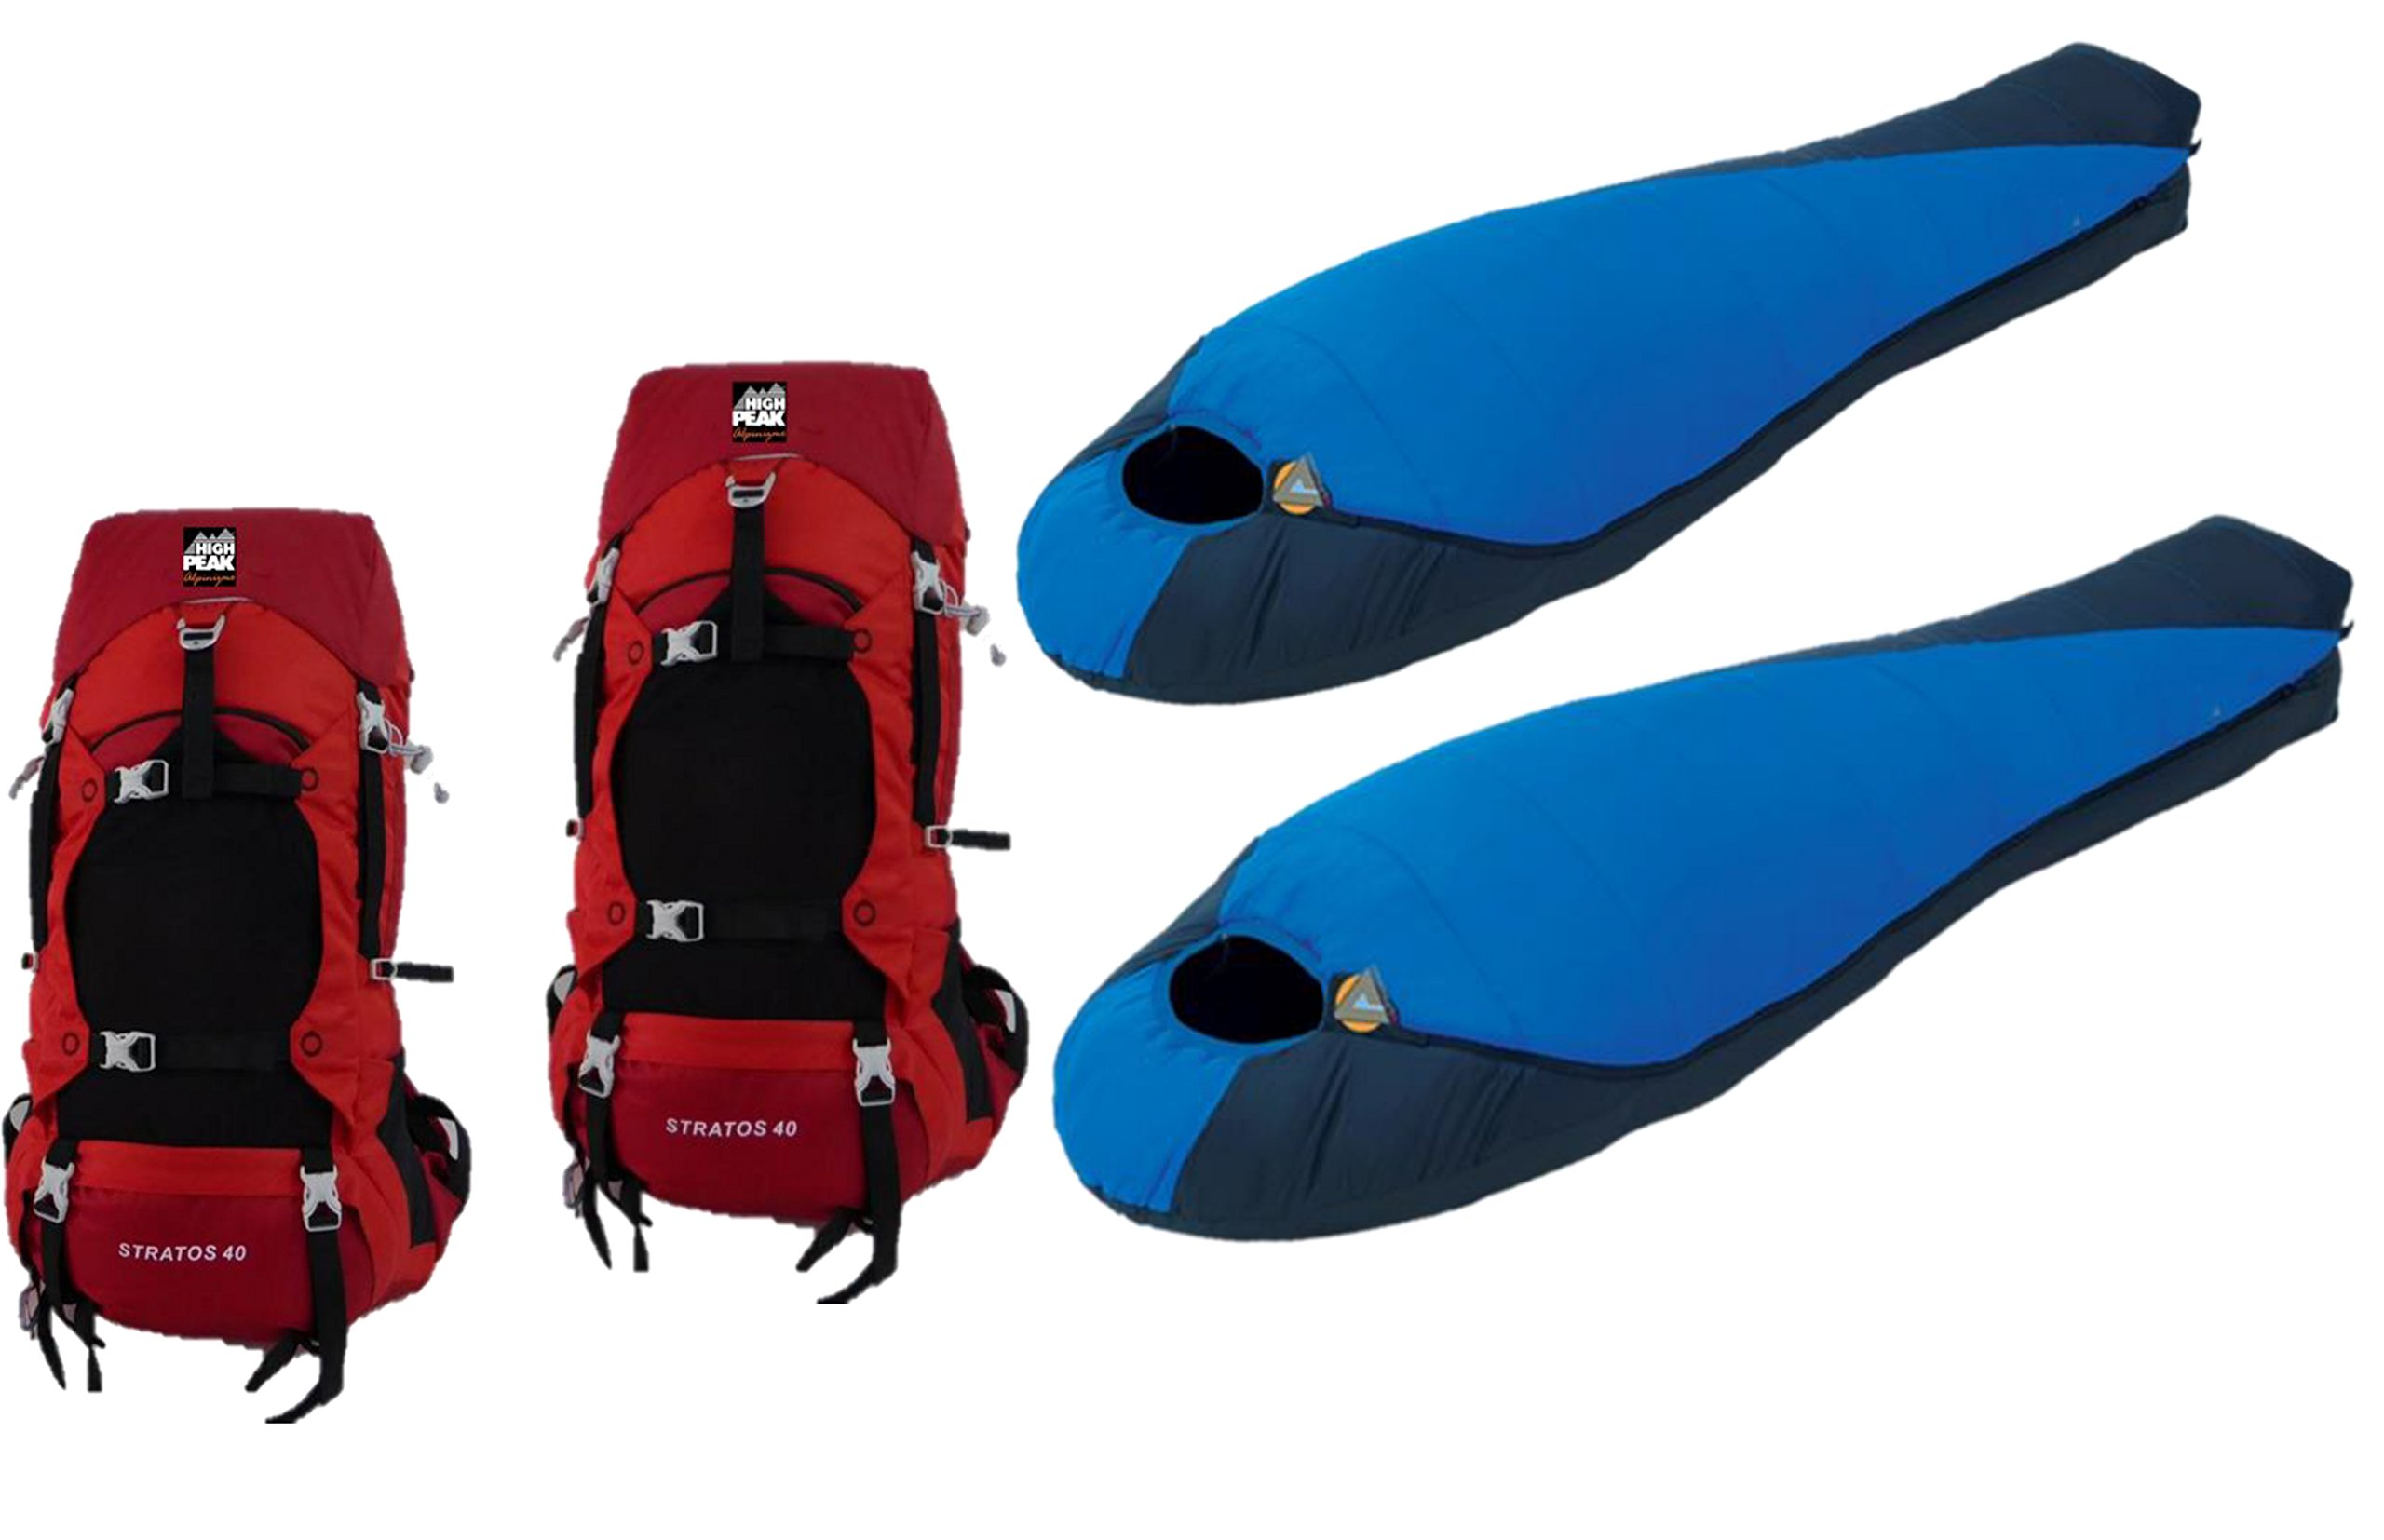 High Peak USA Alpinizmo 2 Stratos 40 Pack & 2 Extreme Pak 0F Sleeping Bags Combo Set, Red/Blue, One Size by Alpinizmo